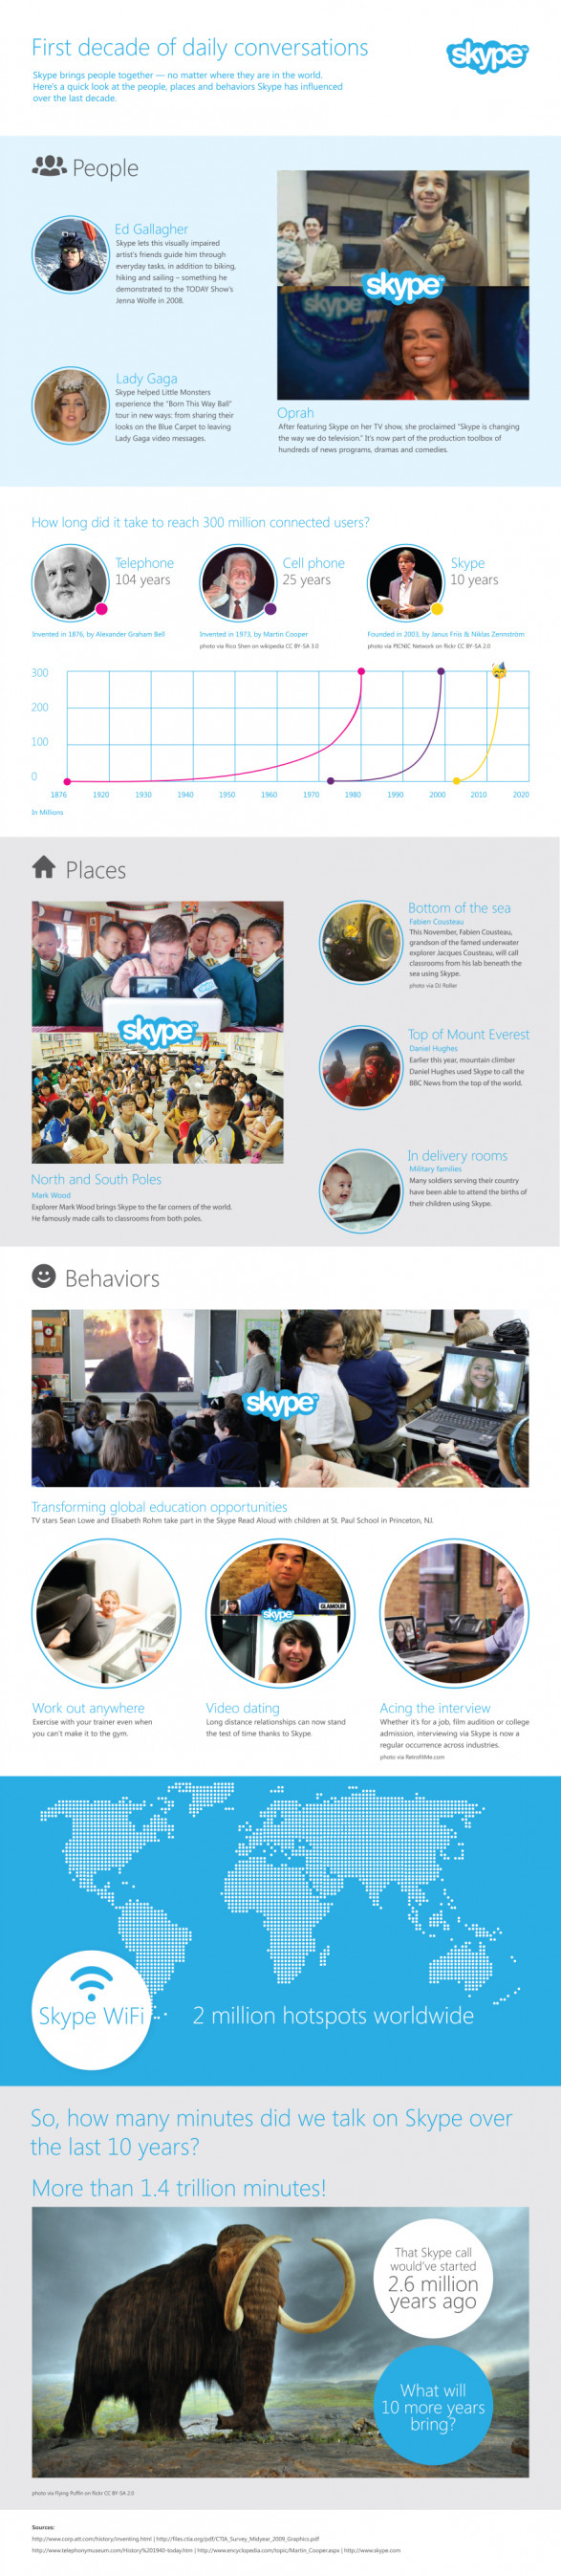 Skype Celebrates a Decade of Meaningful Conversations!